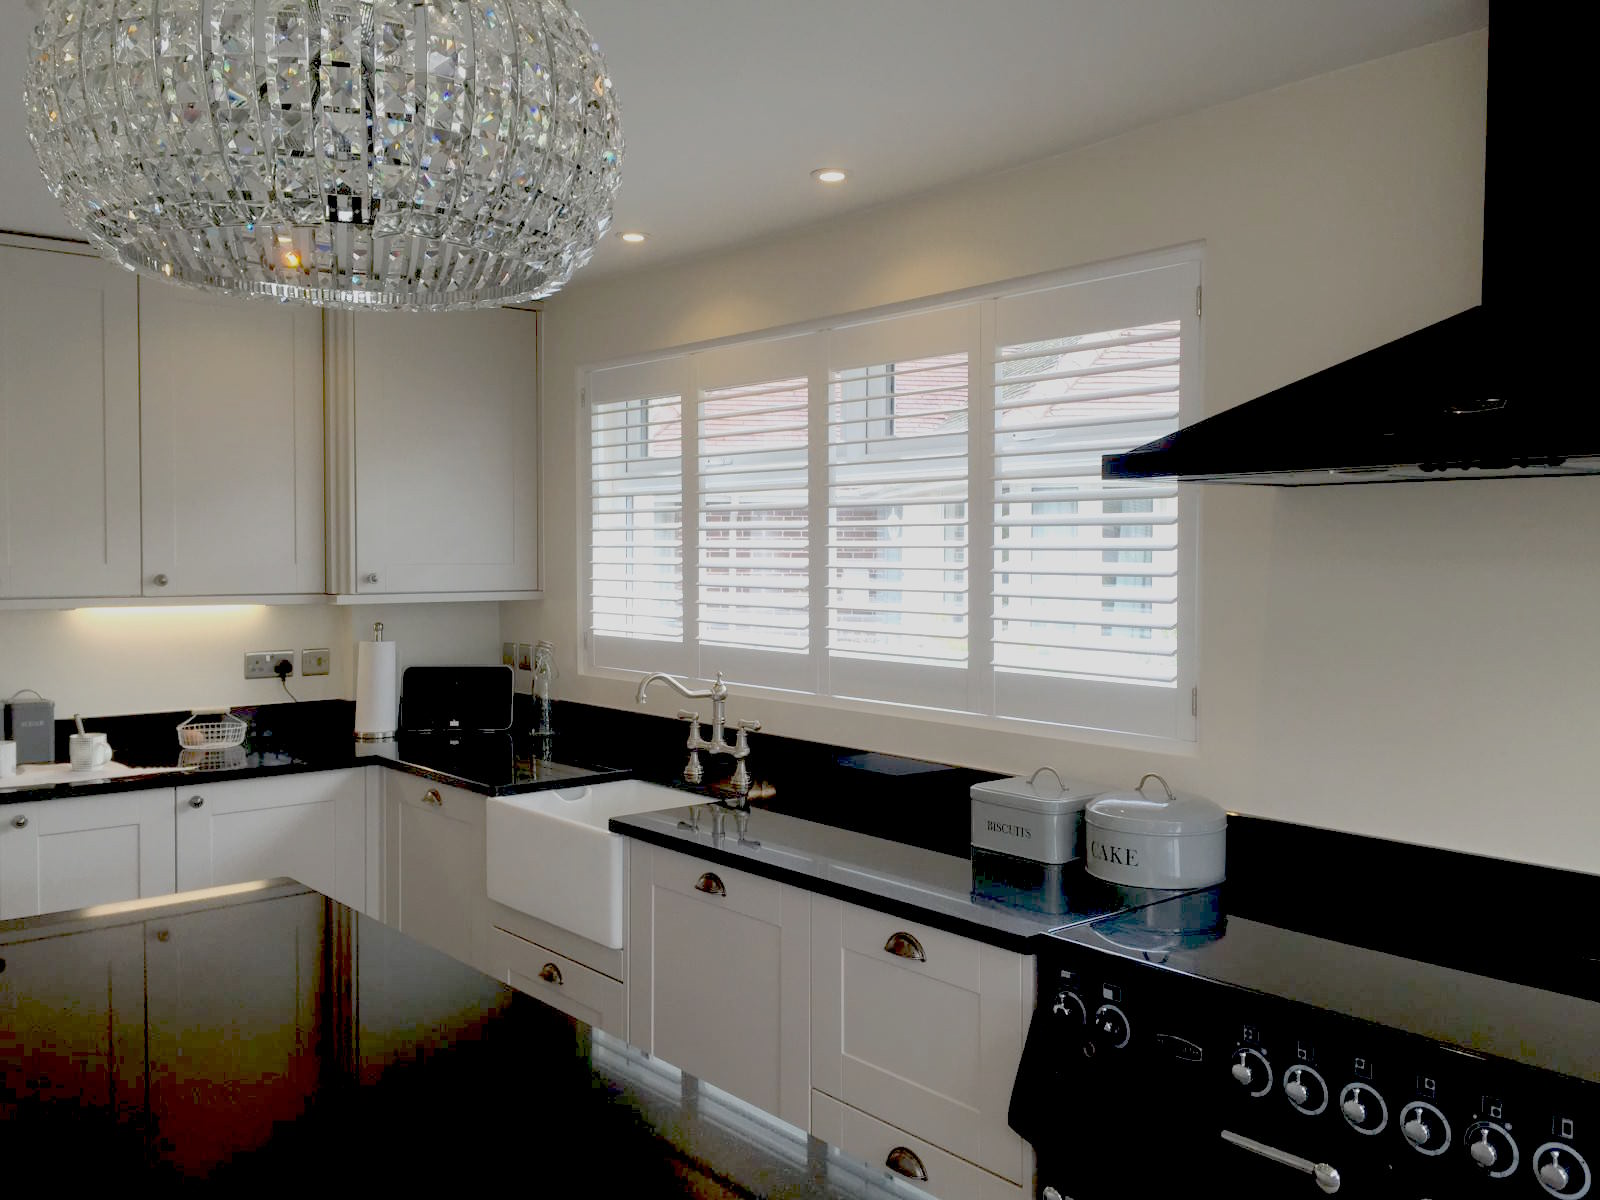 Kitchen Shutters - Christmas - Shuttersouth